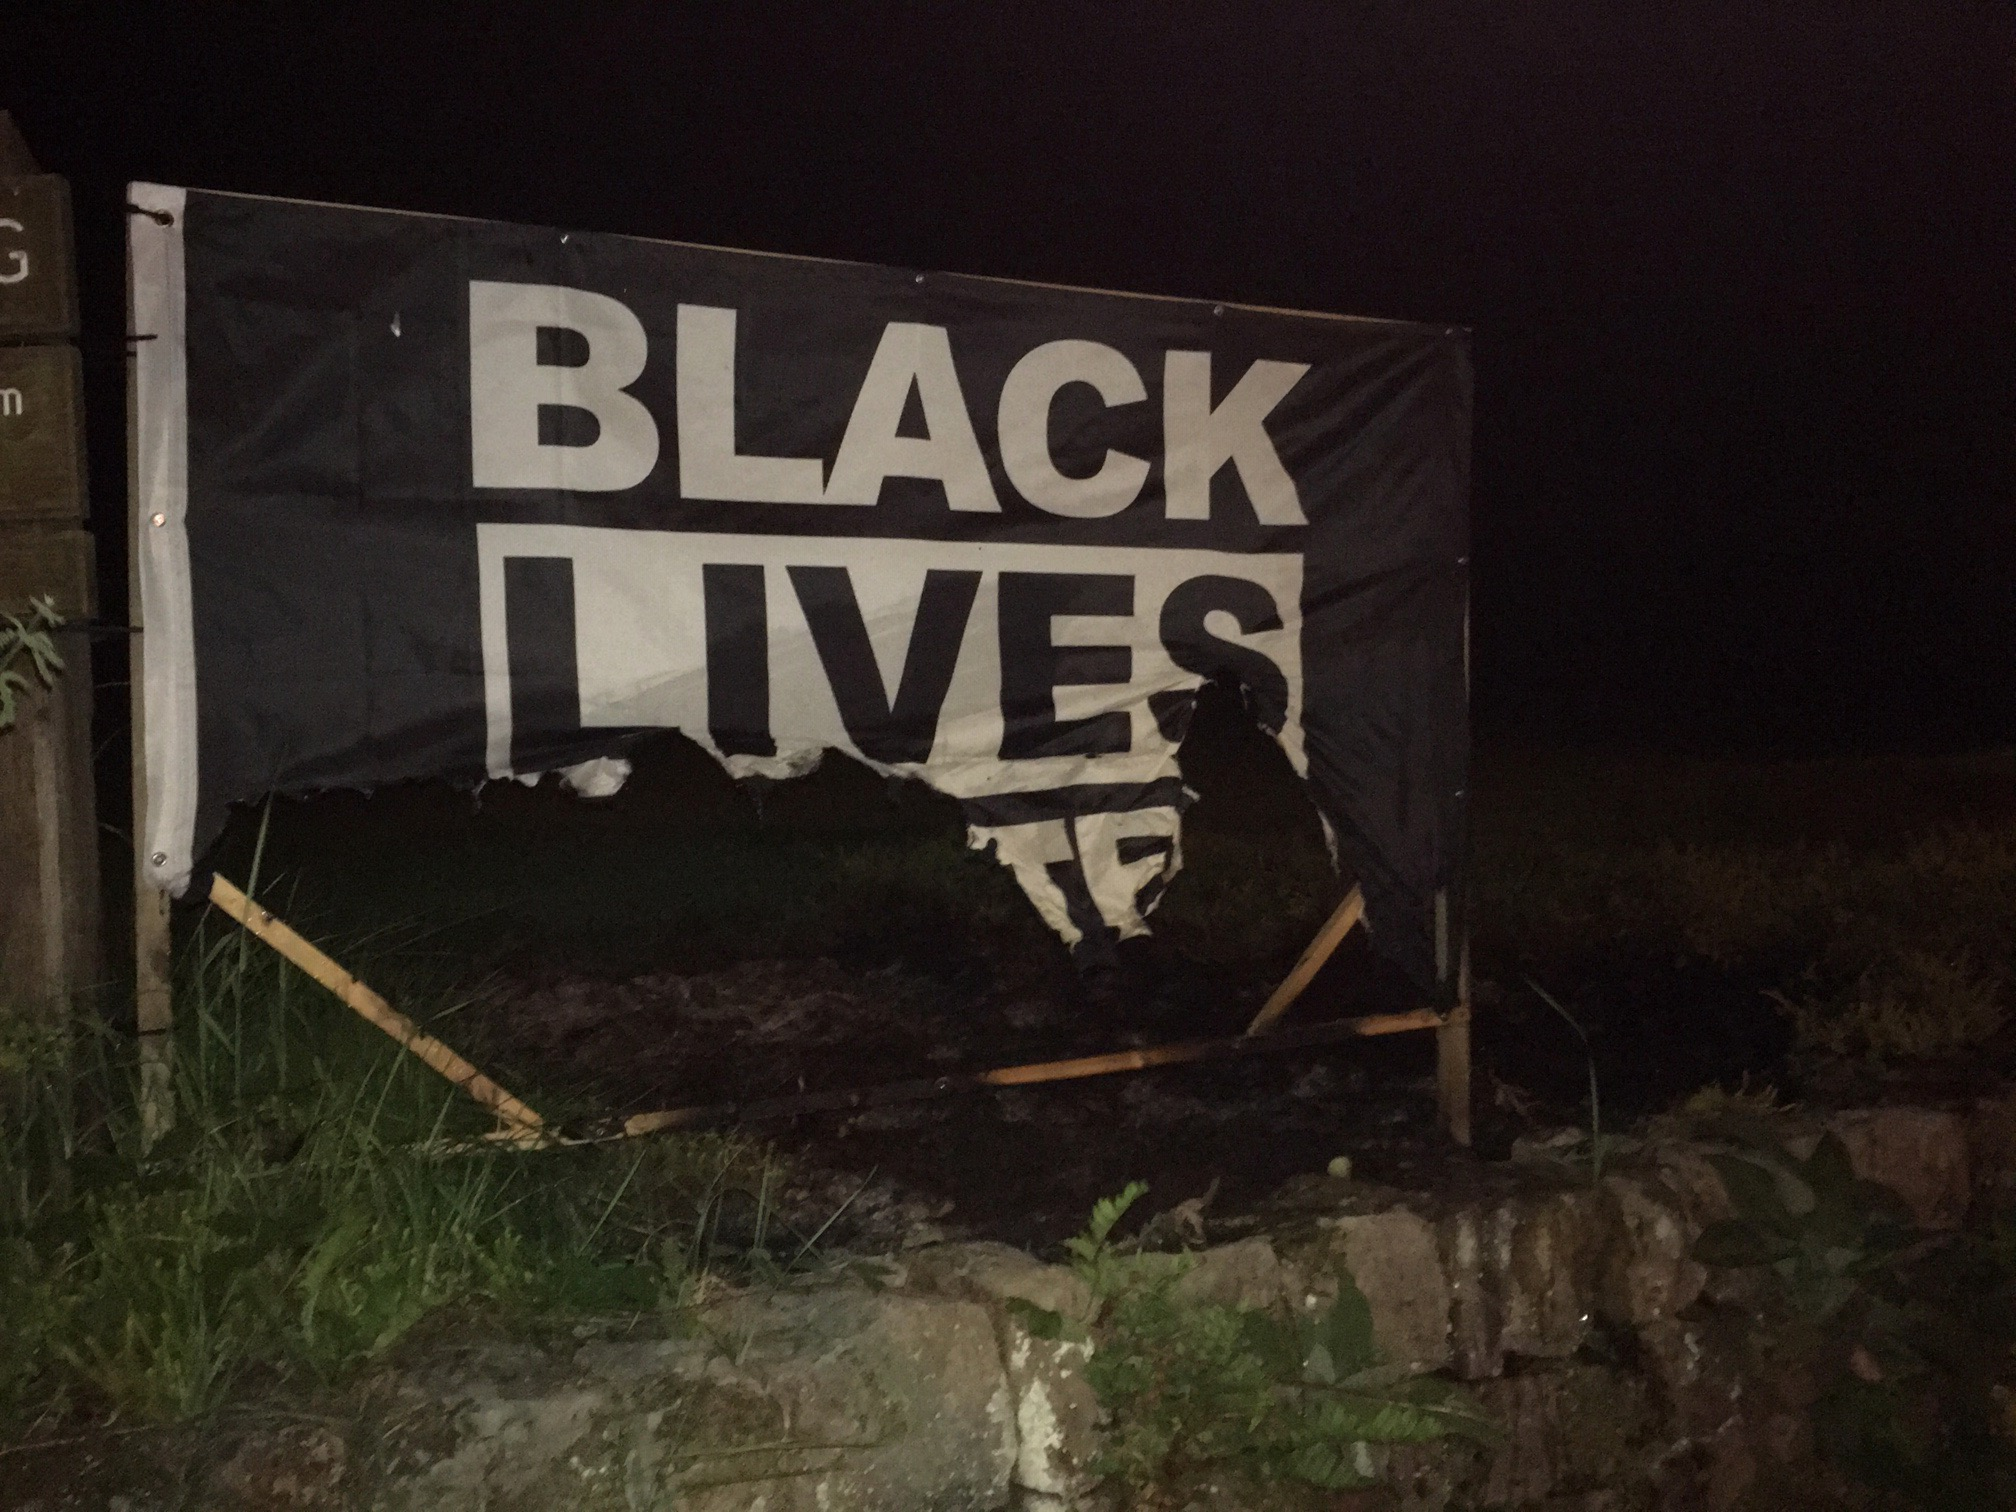 Disley Quaker Meeting BLM Banner in night of the fire, 10 August 2020